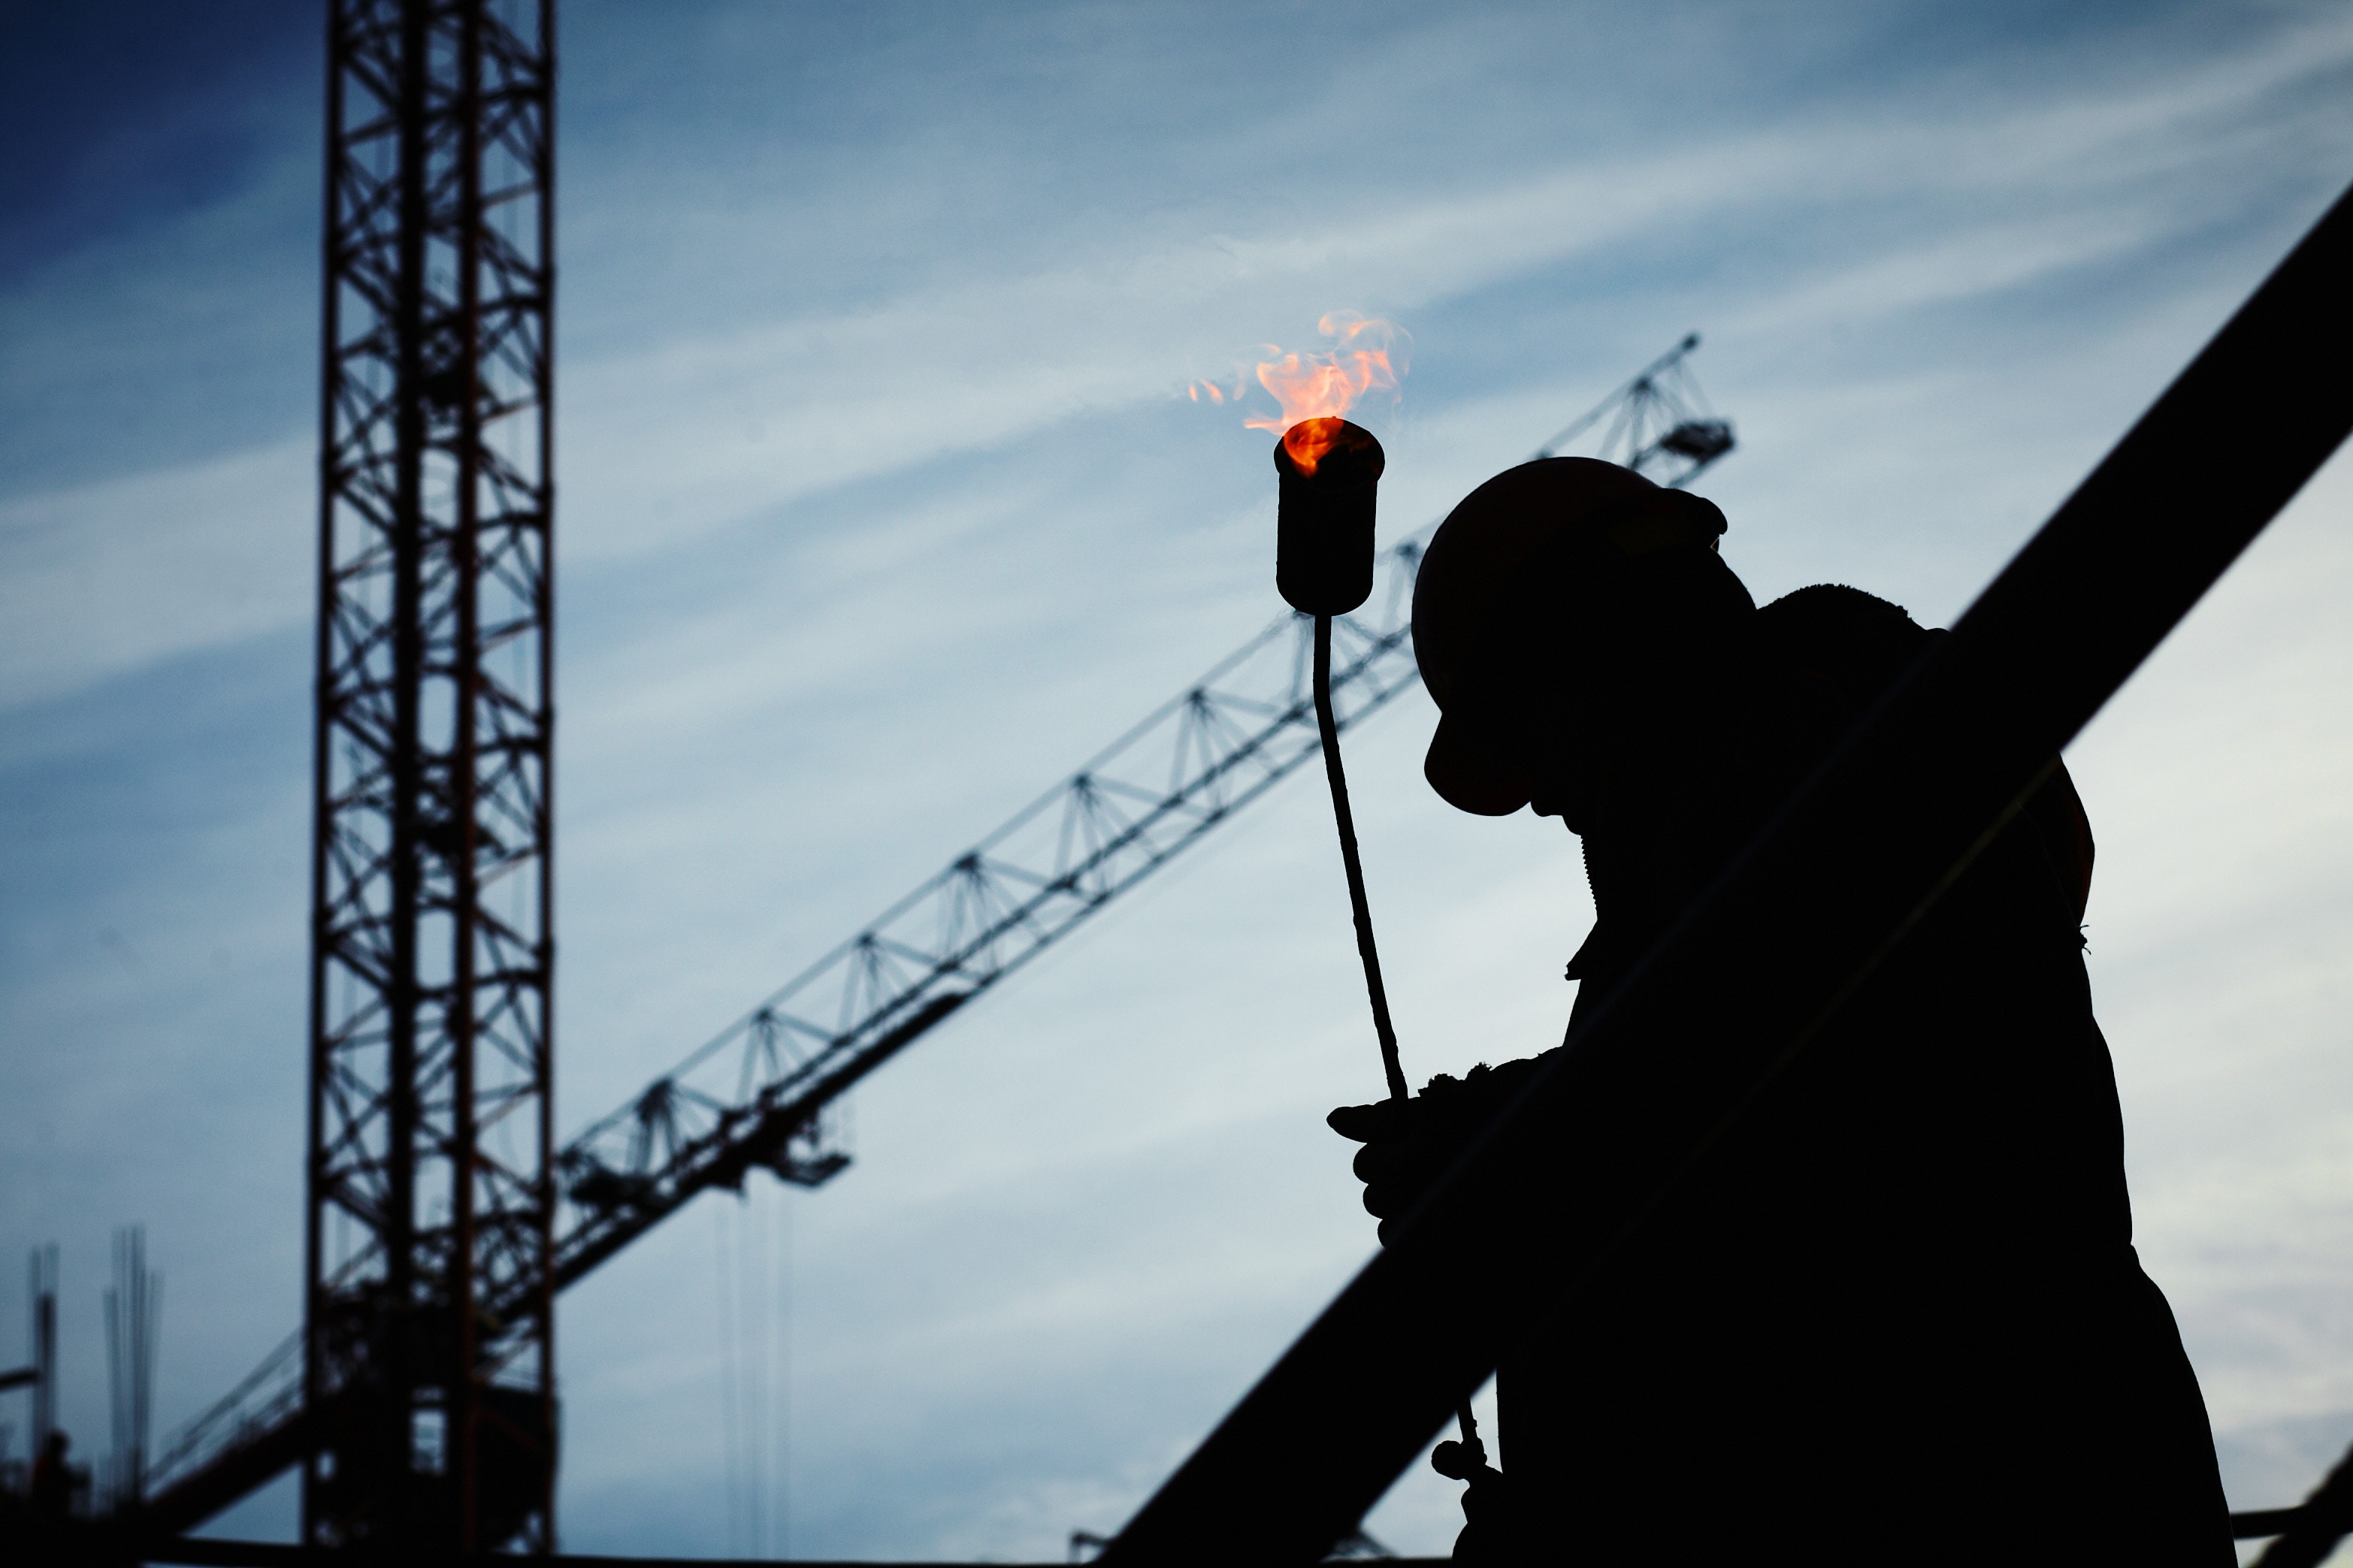 Construction Silhouette